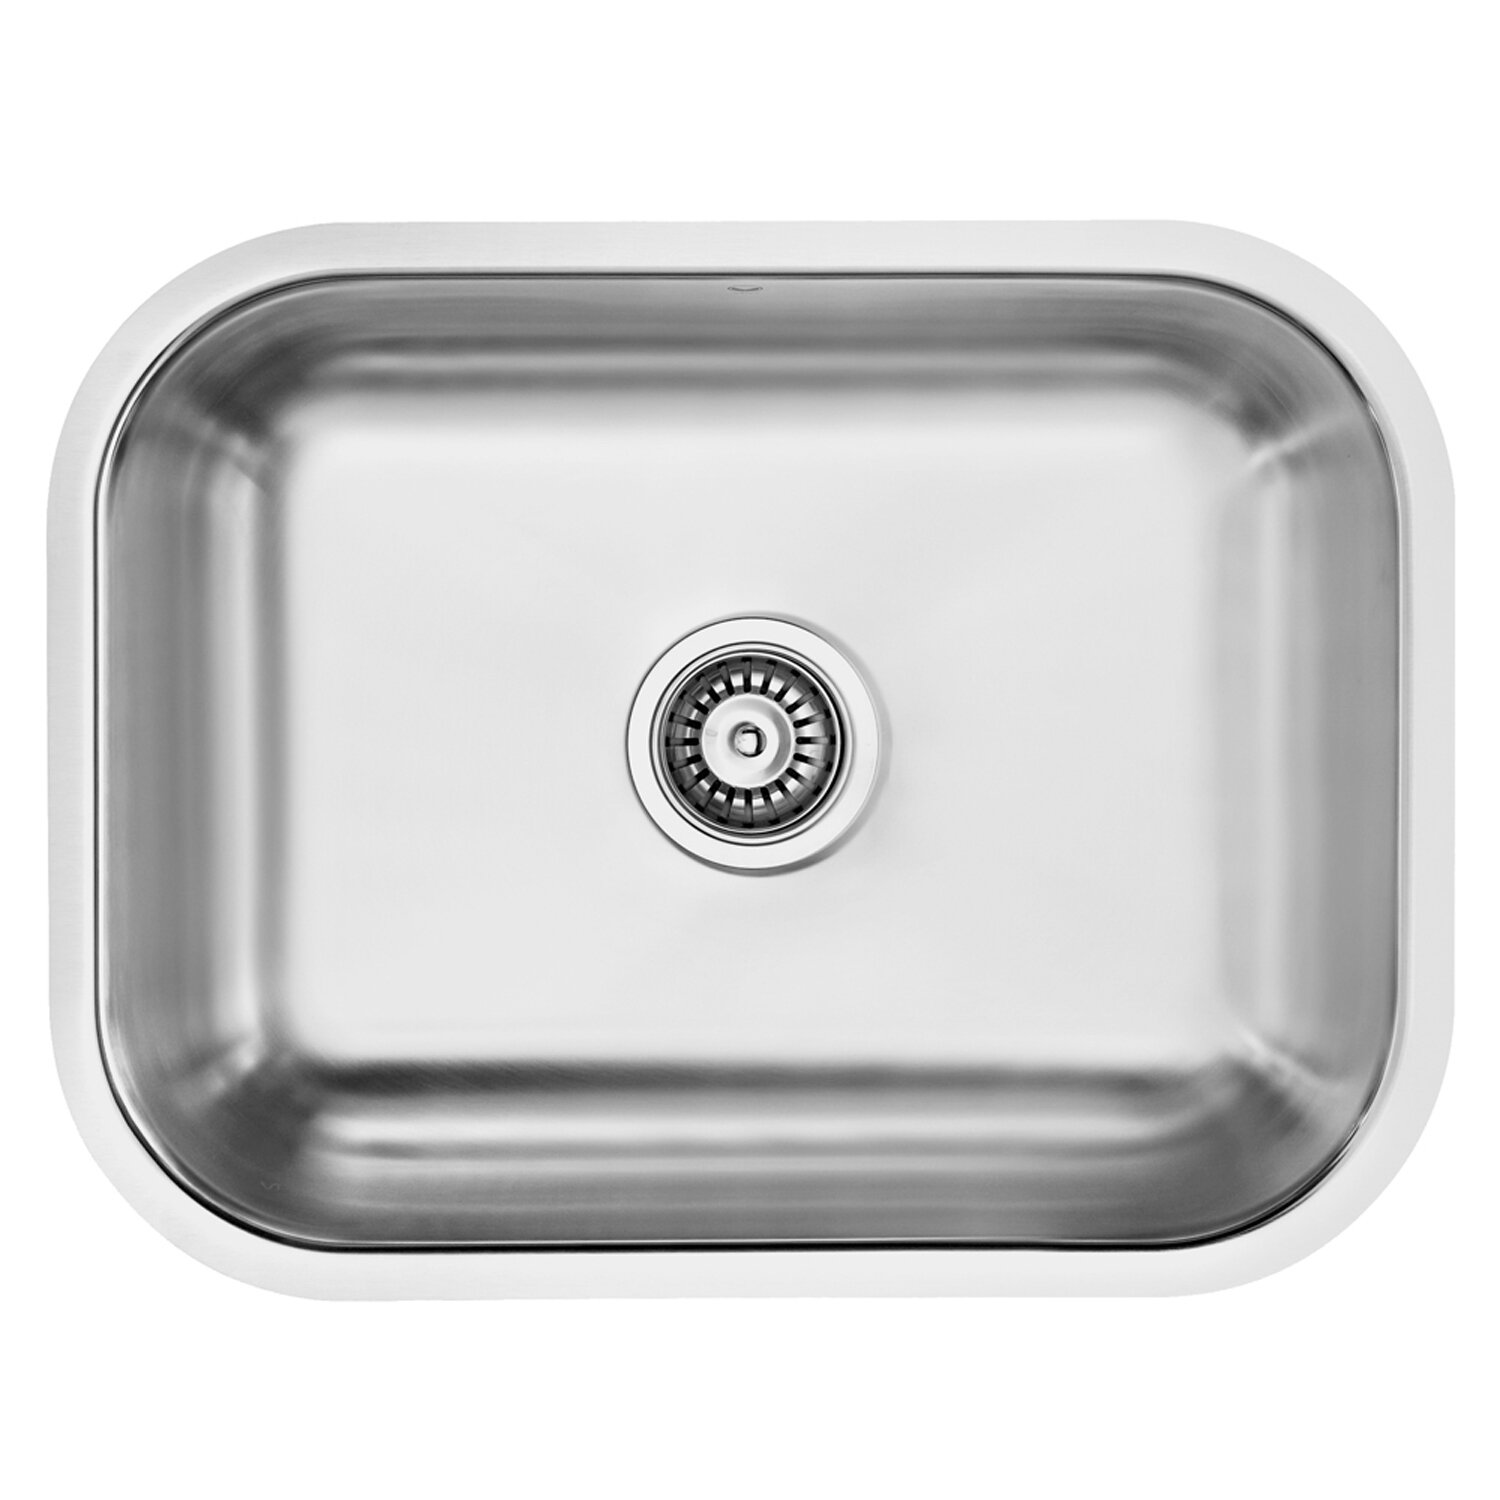 ... Single Bowl 18 Gauge Stainless Steel Kitchen Sink & Reviews Wayfair